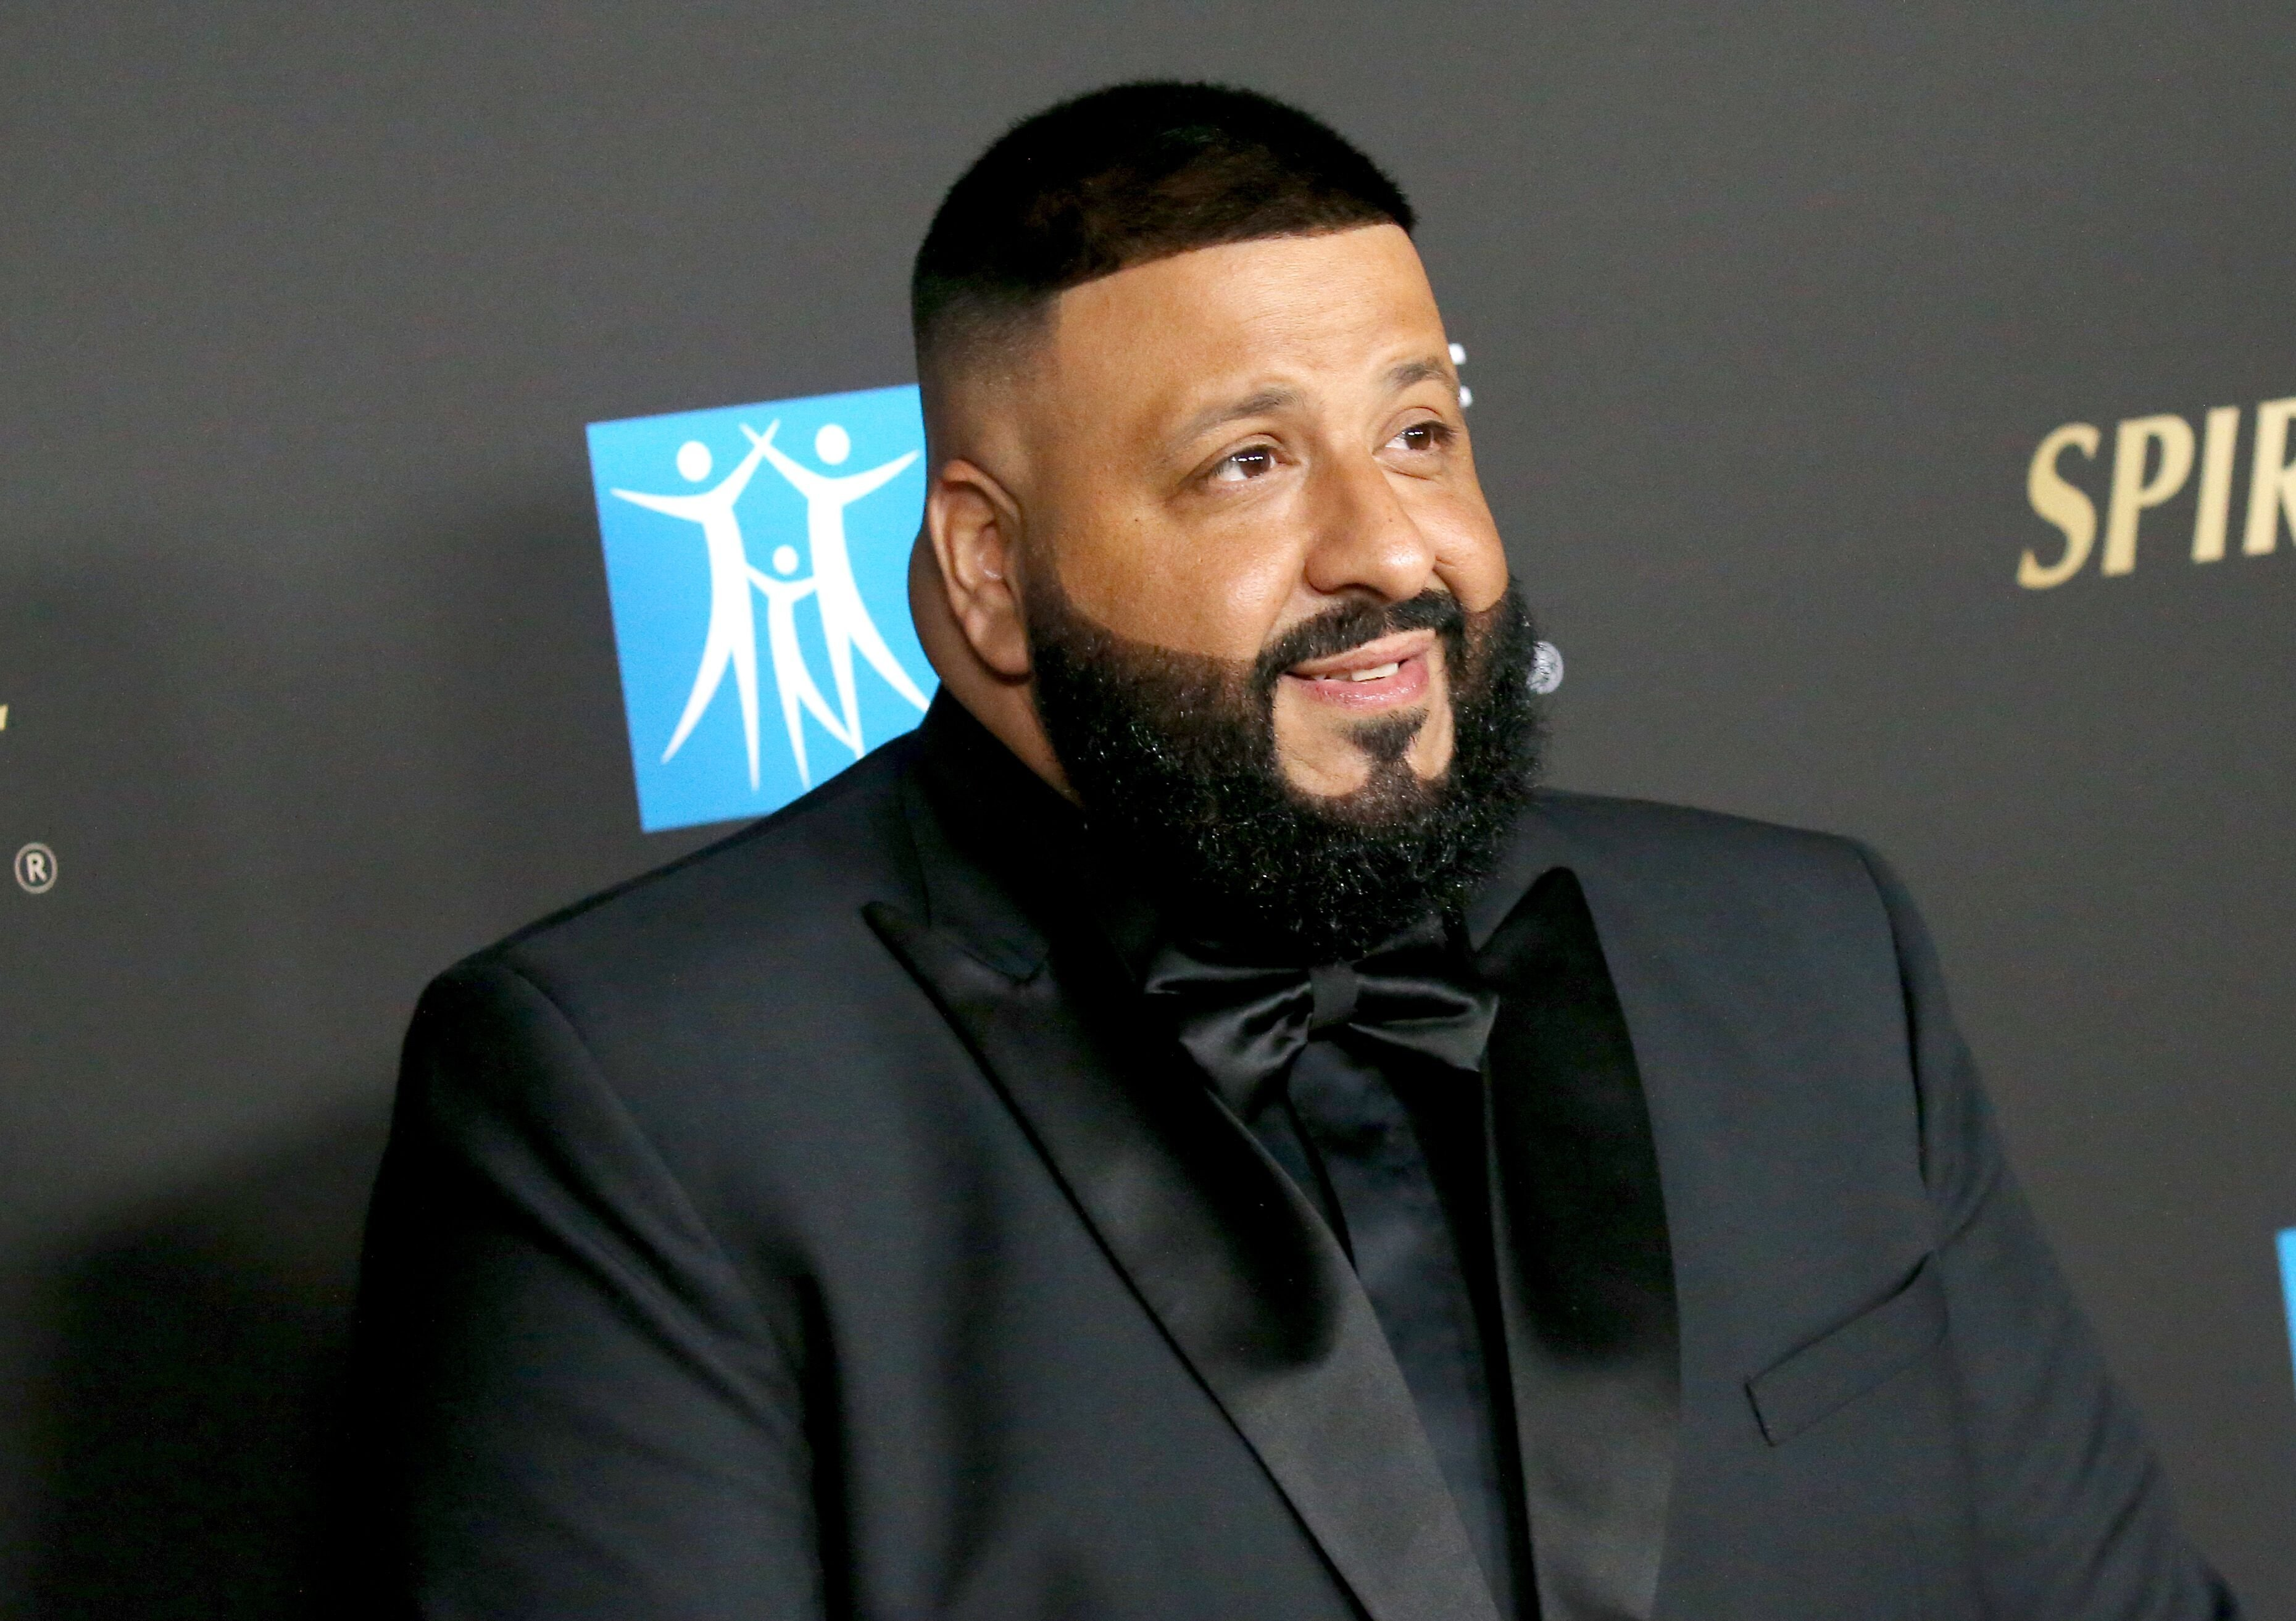 DJ Khaled attends the City Of Hope's Spirit of Life 2019 Gala held at The Barker Hangar on October 10, 2019.   Source: Getty Images